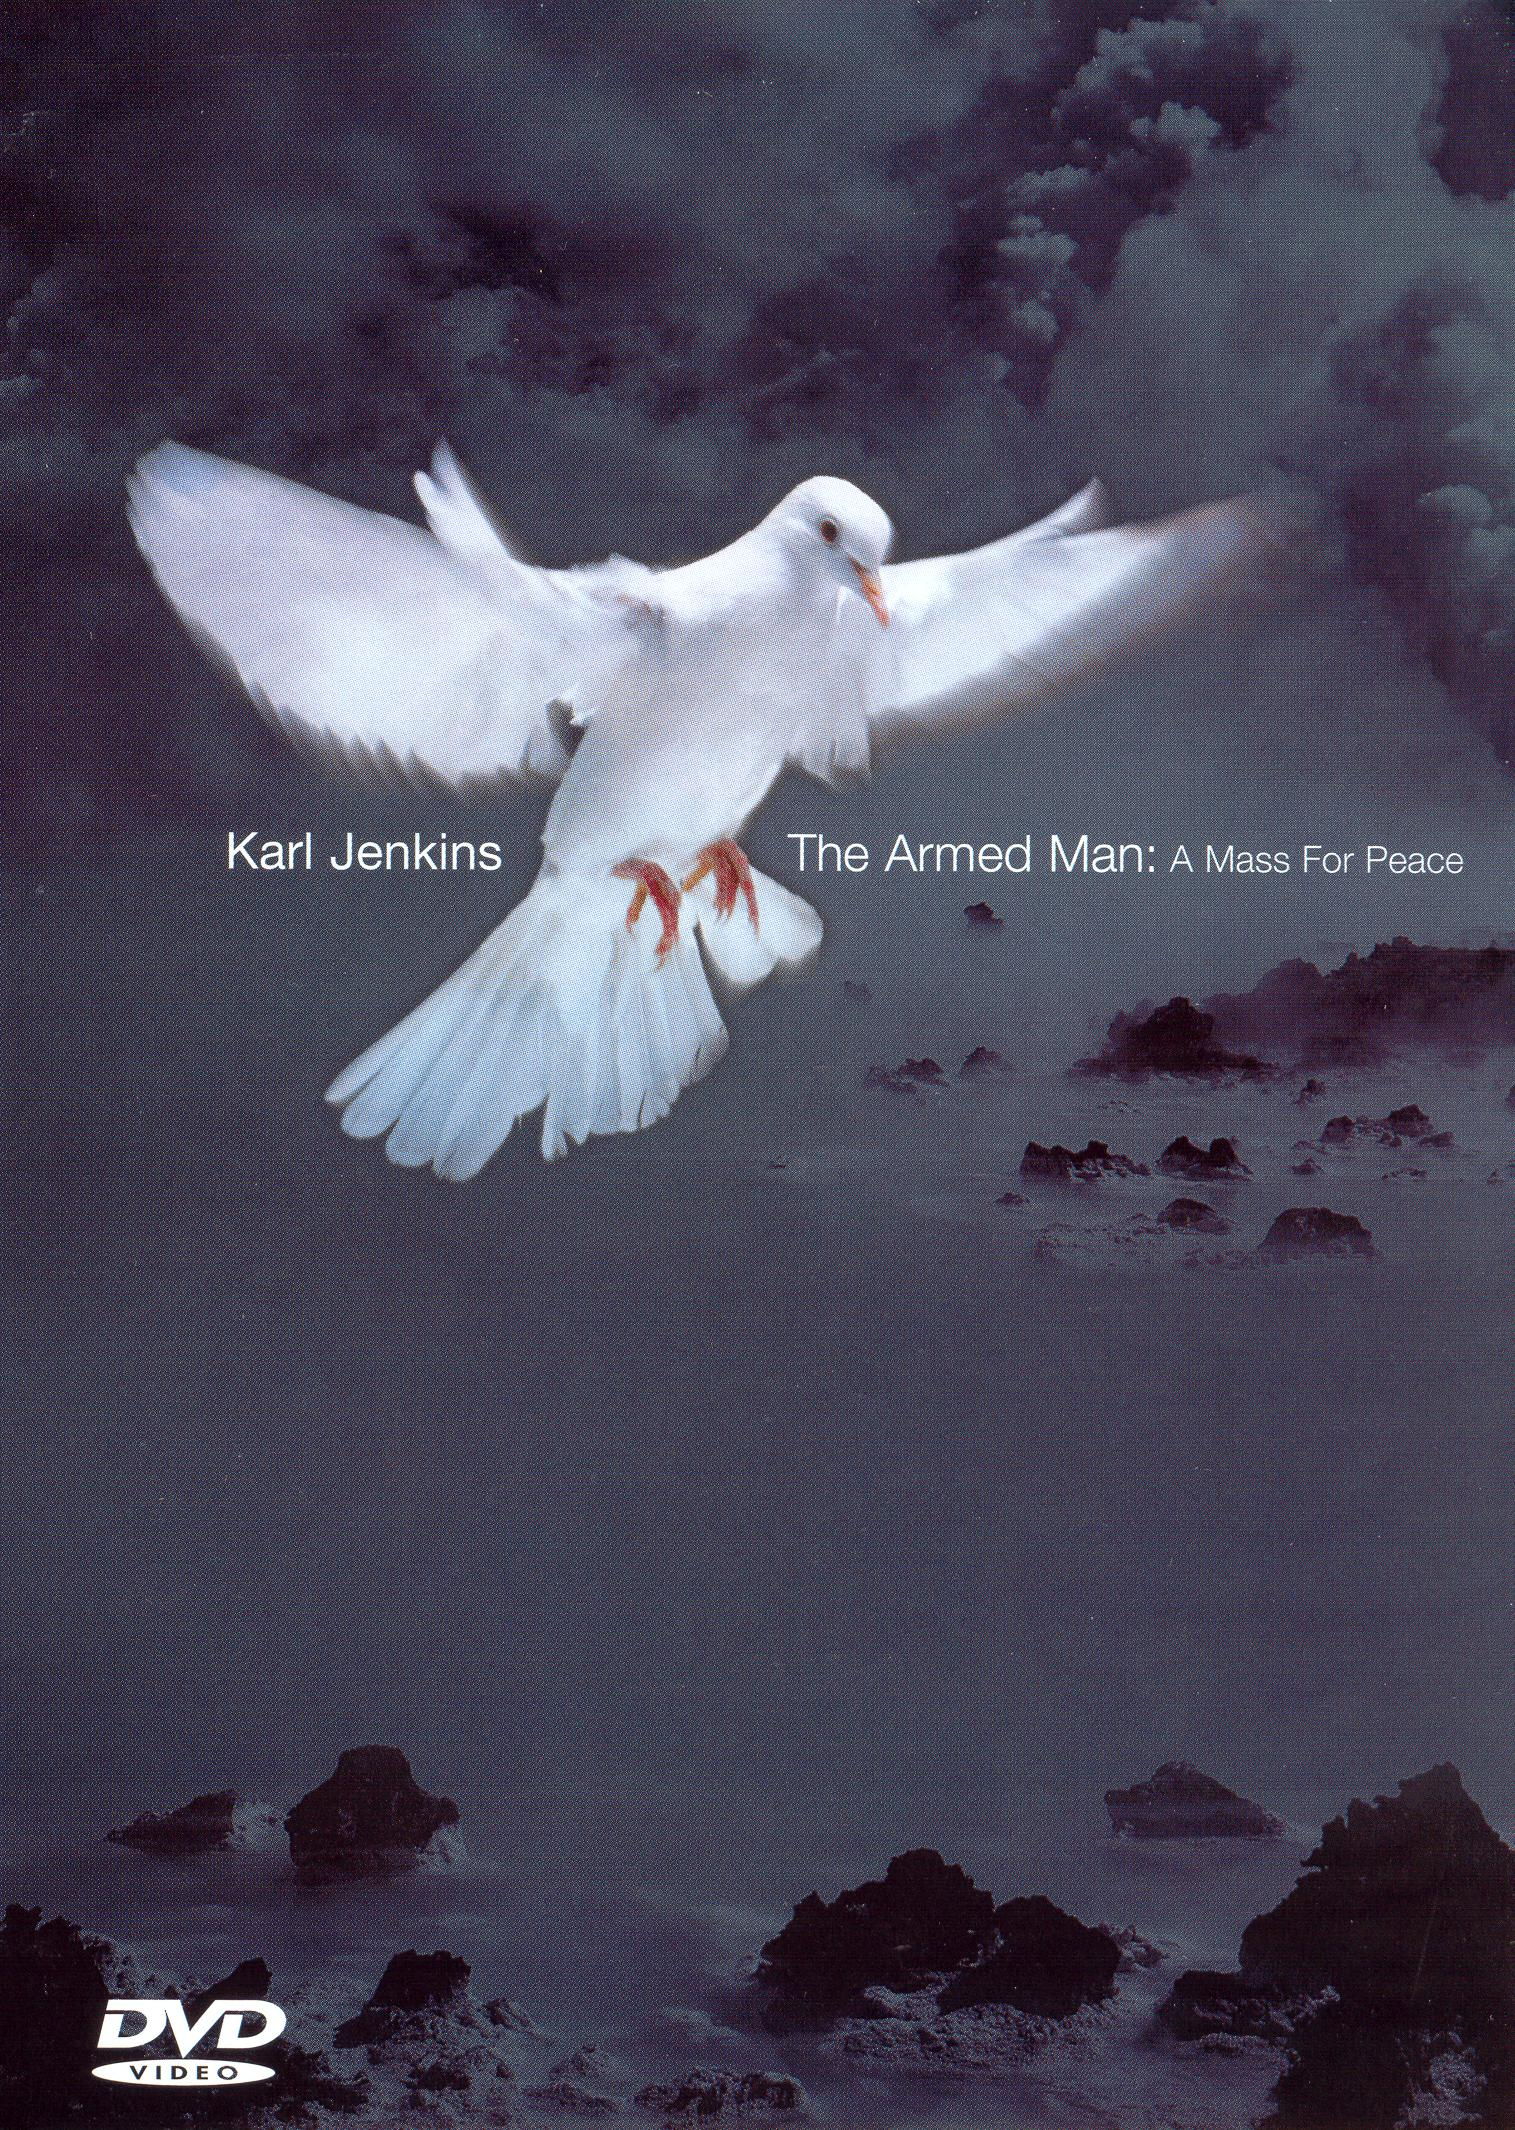 Karl Jenkins: The Armed Man a Mass for Peace